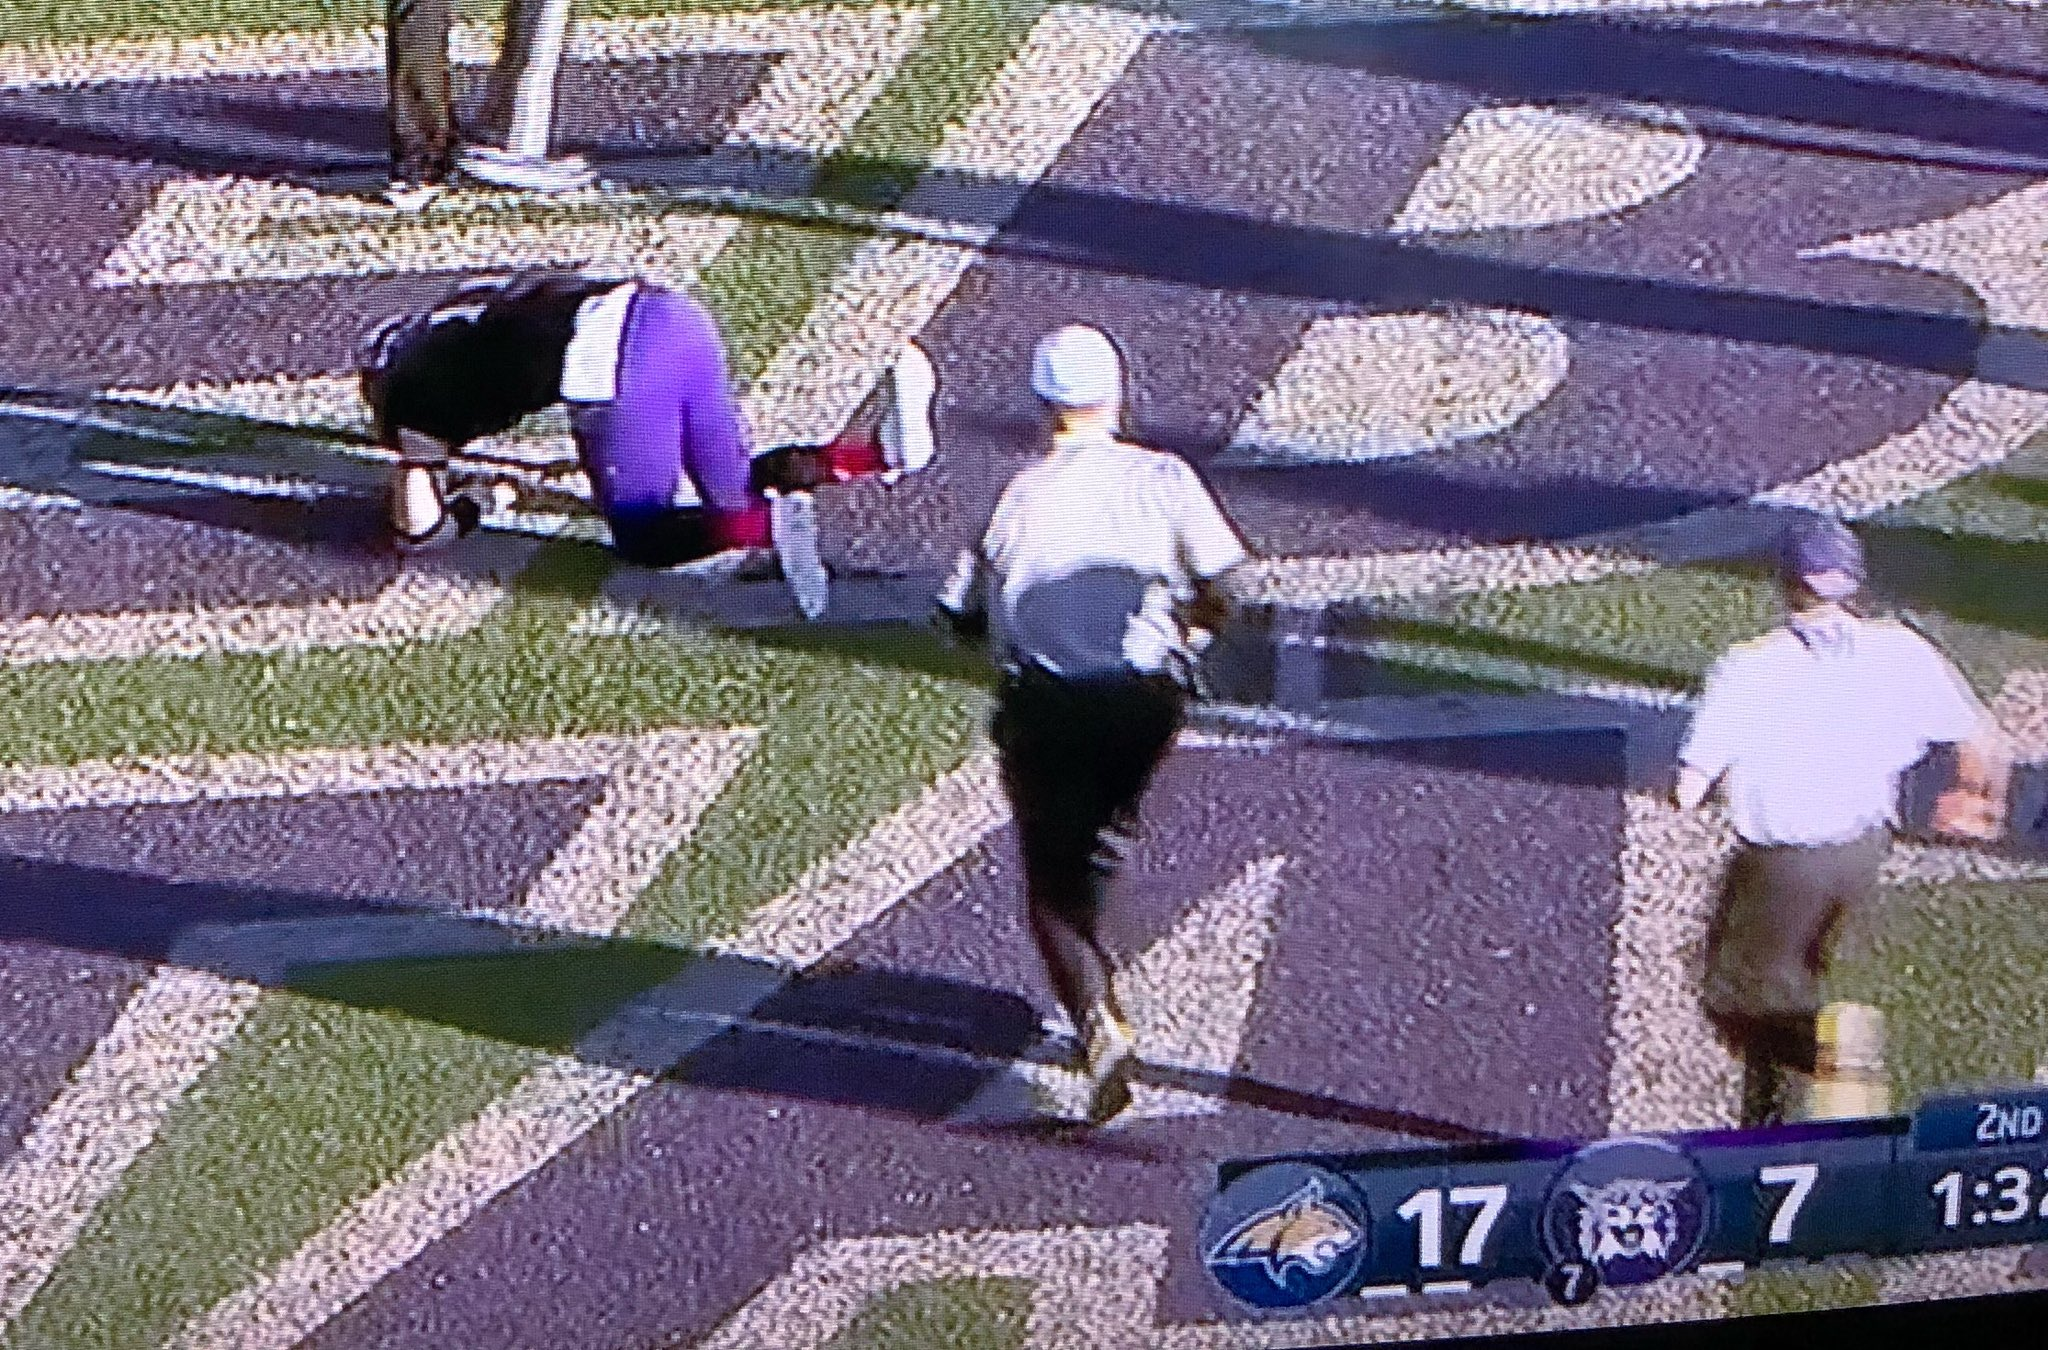 Weber State QB Suffered a Severely Broken Ankle and Told the Doctors to Tape it Up So He Could Go Back In